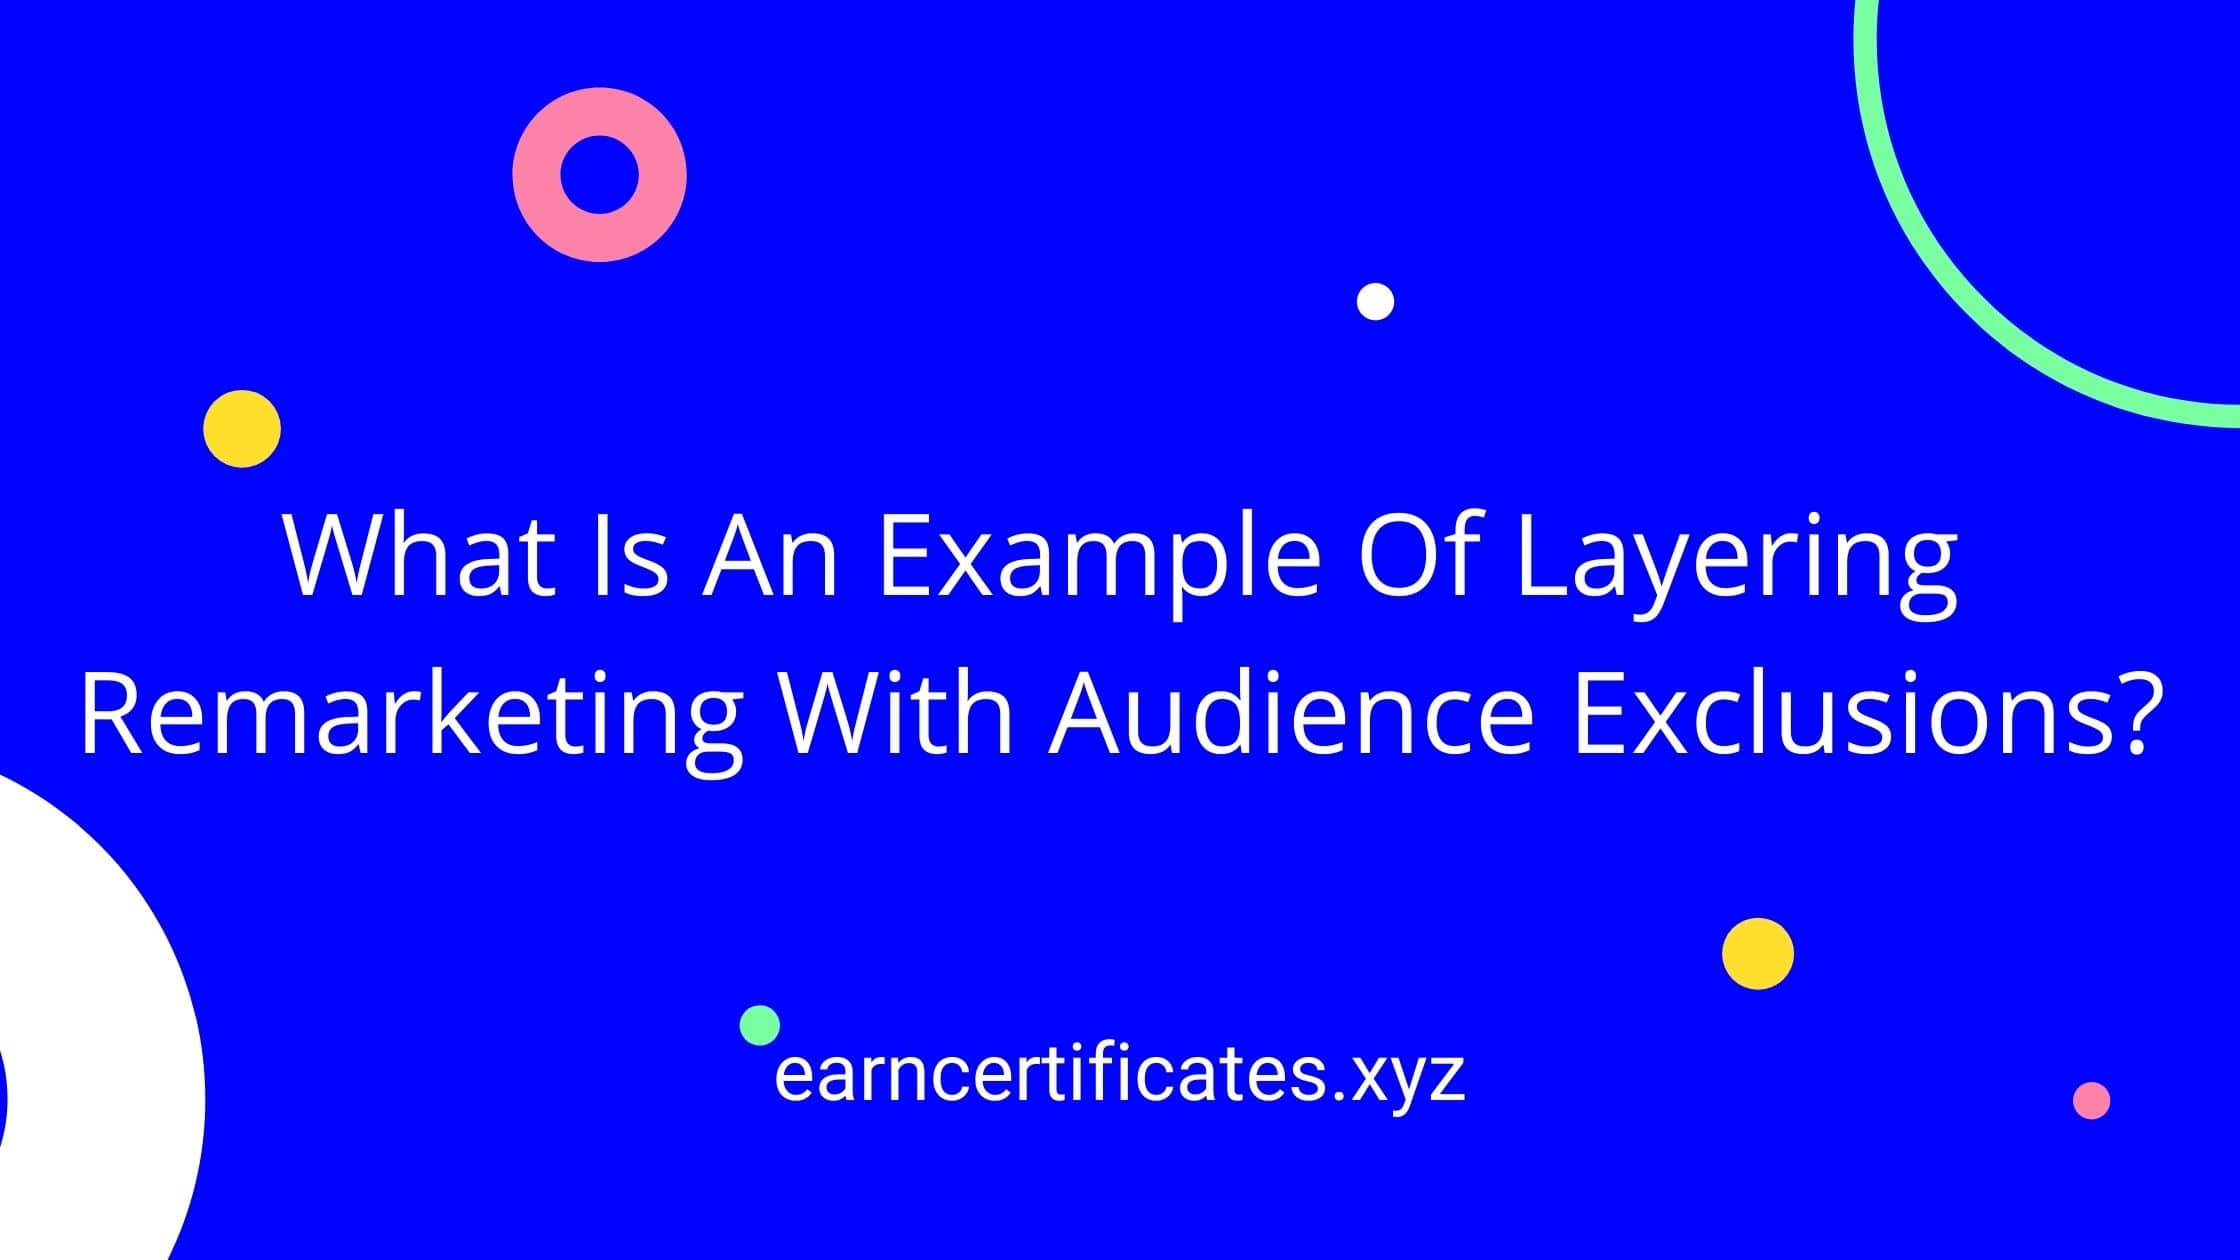 What Is An Example Of Layering Remarketing With Audience Exclusions?